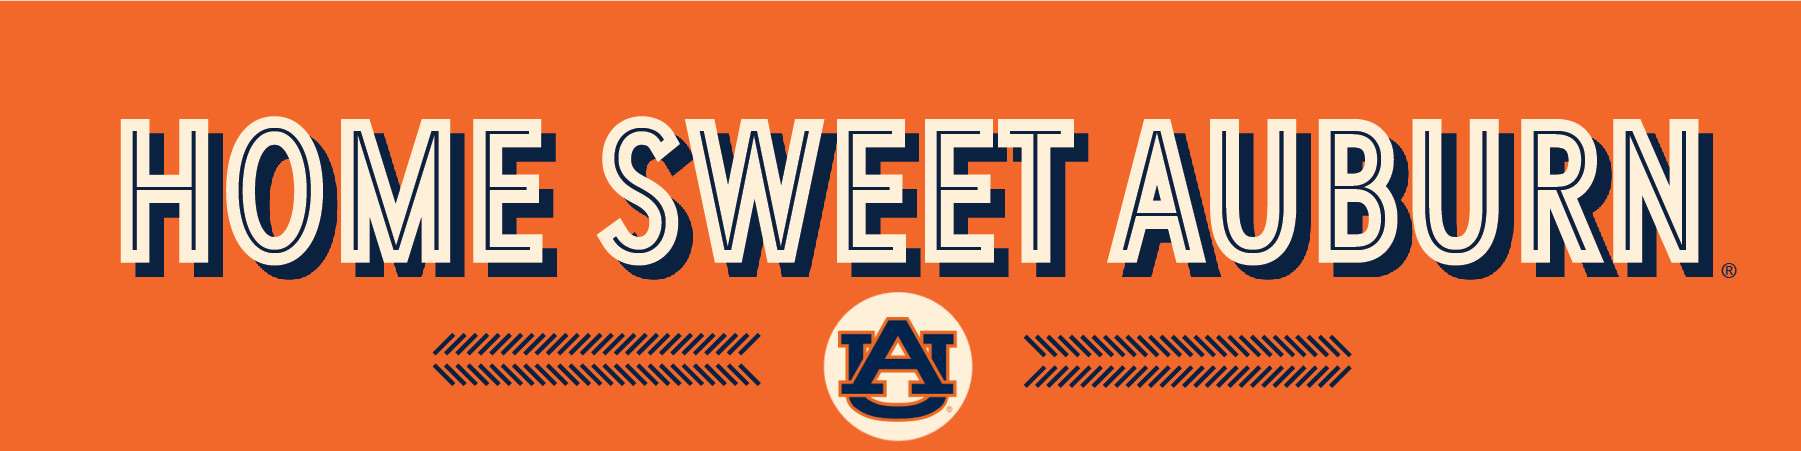 """Home Sweet Auburn"" Banner with bold text and interlocking AU logo"